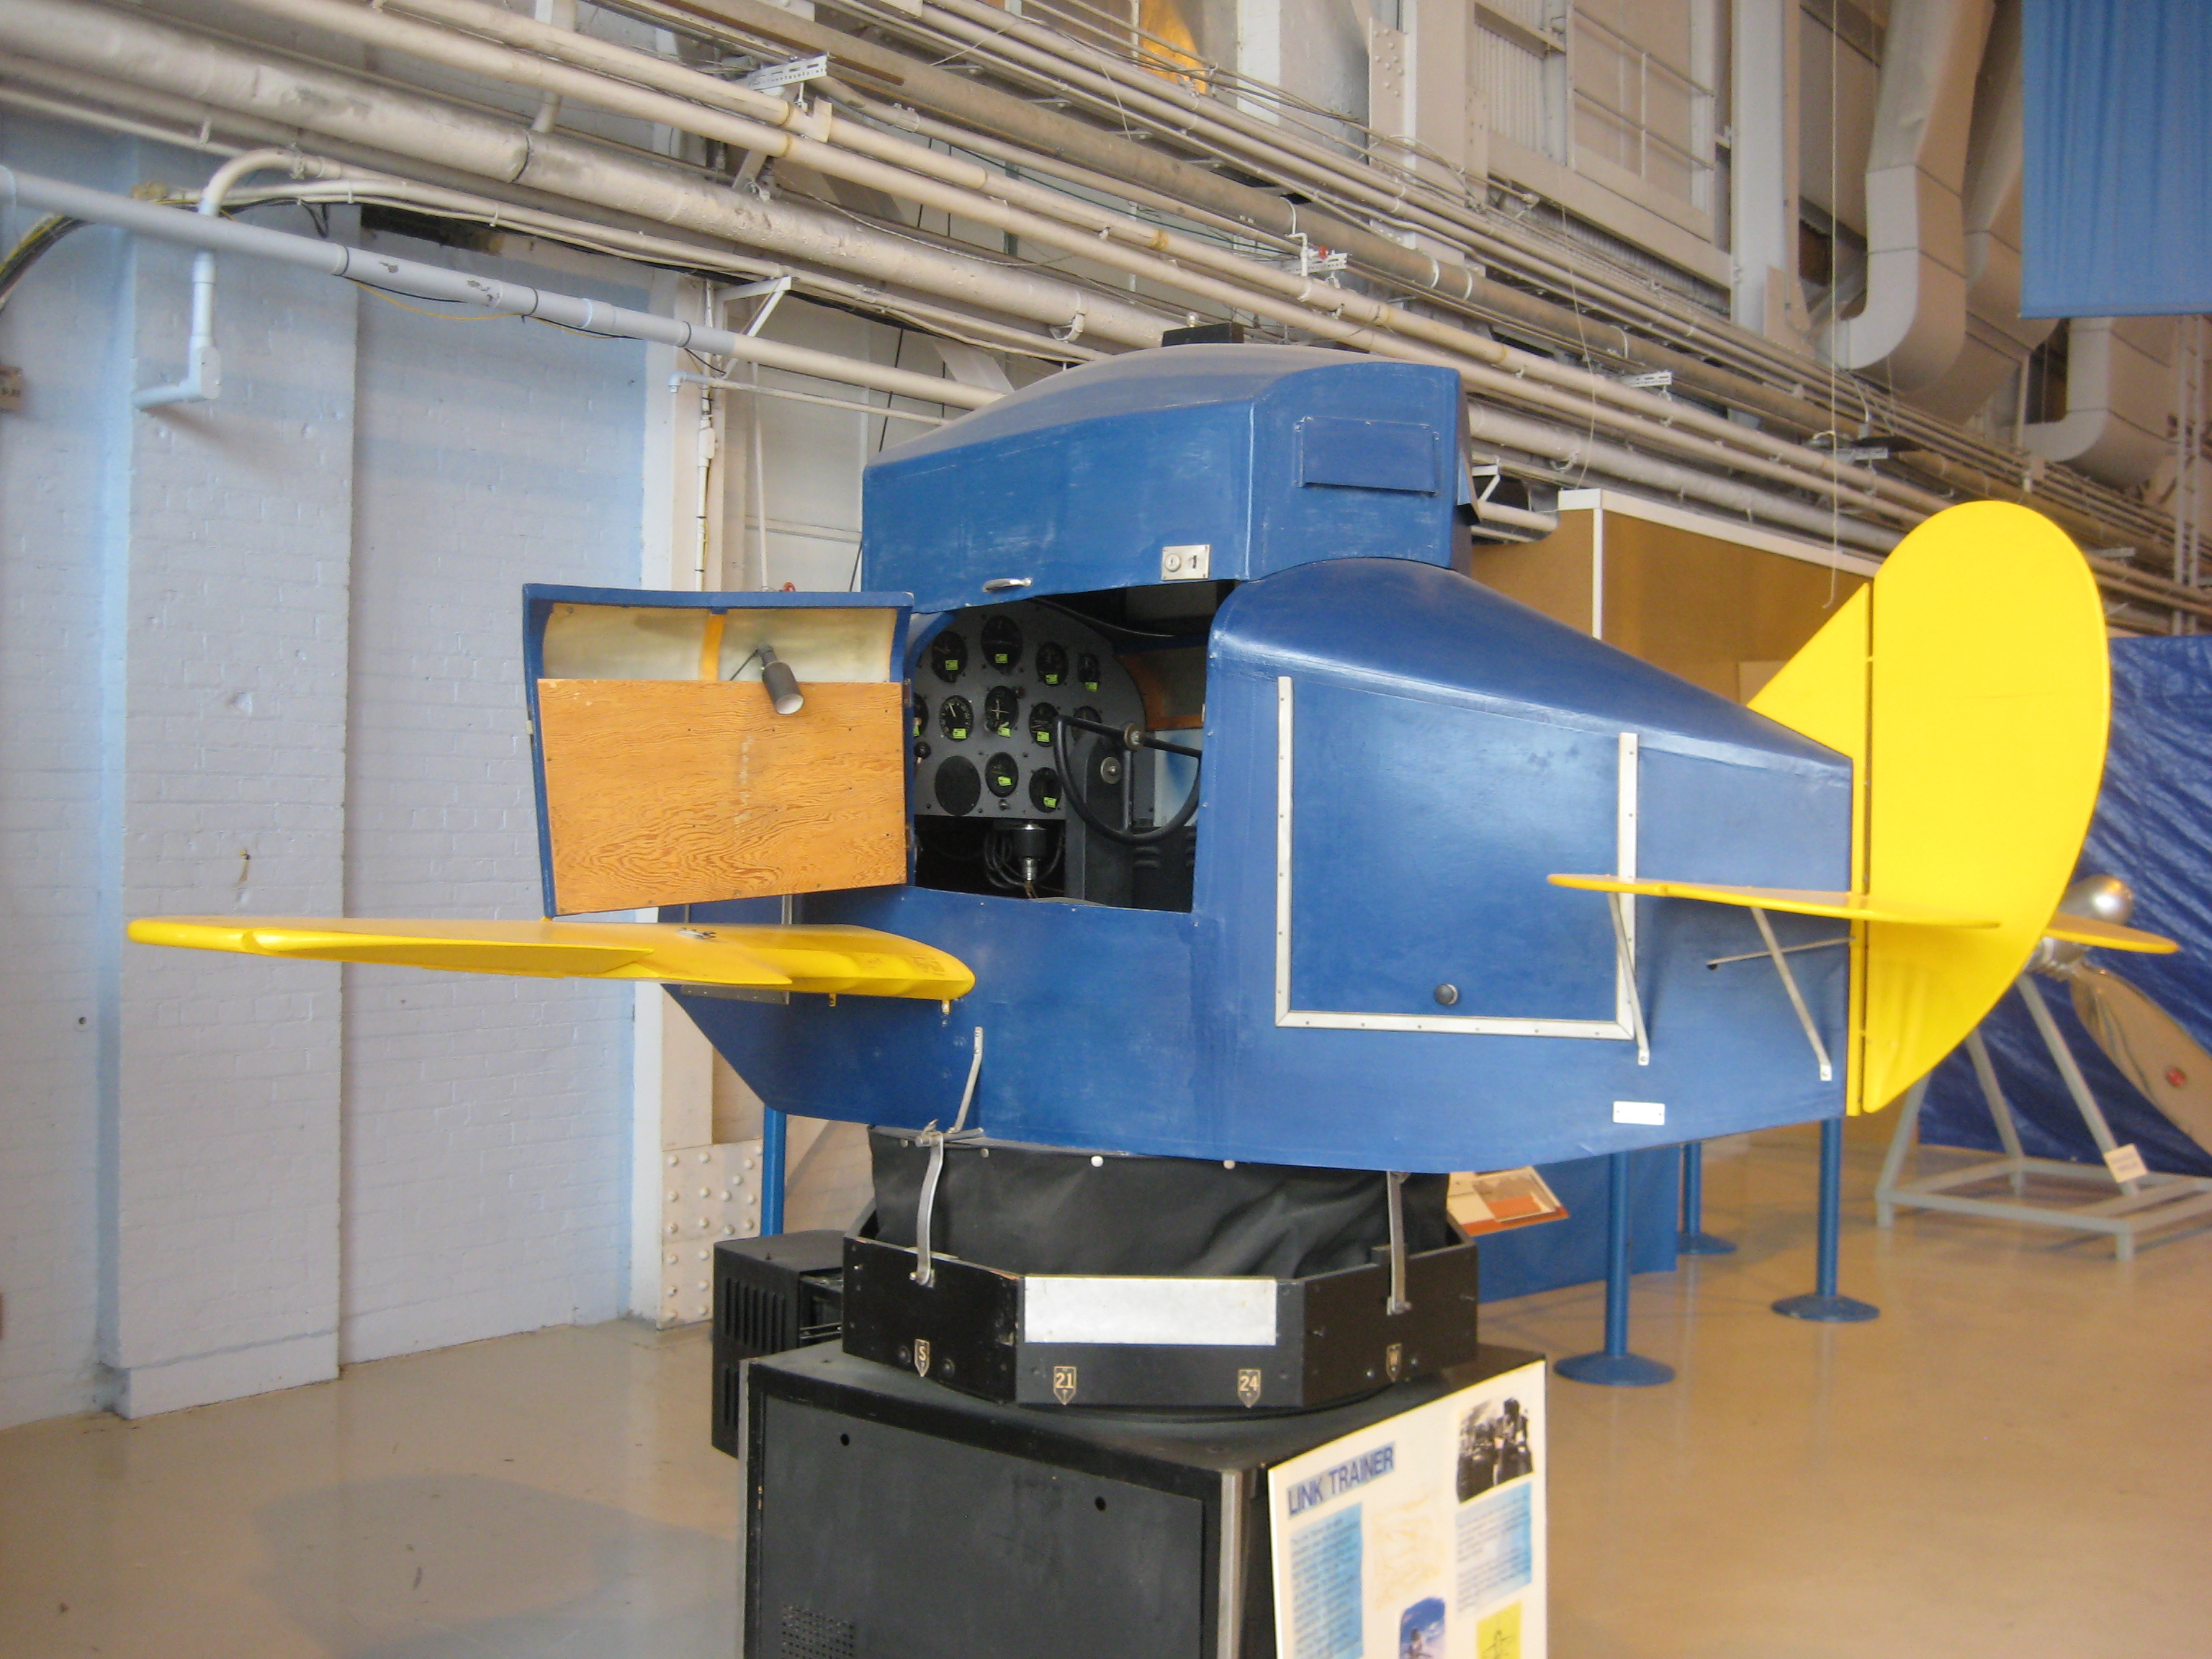 Edwin Albert Link's Flight Simulator